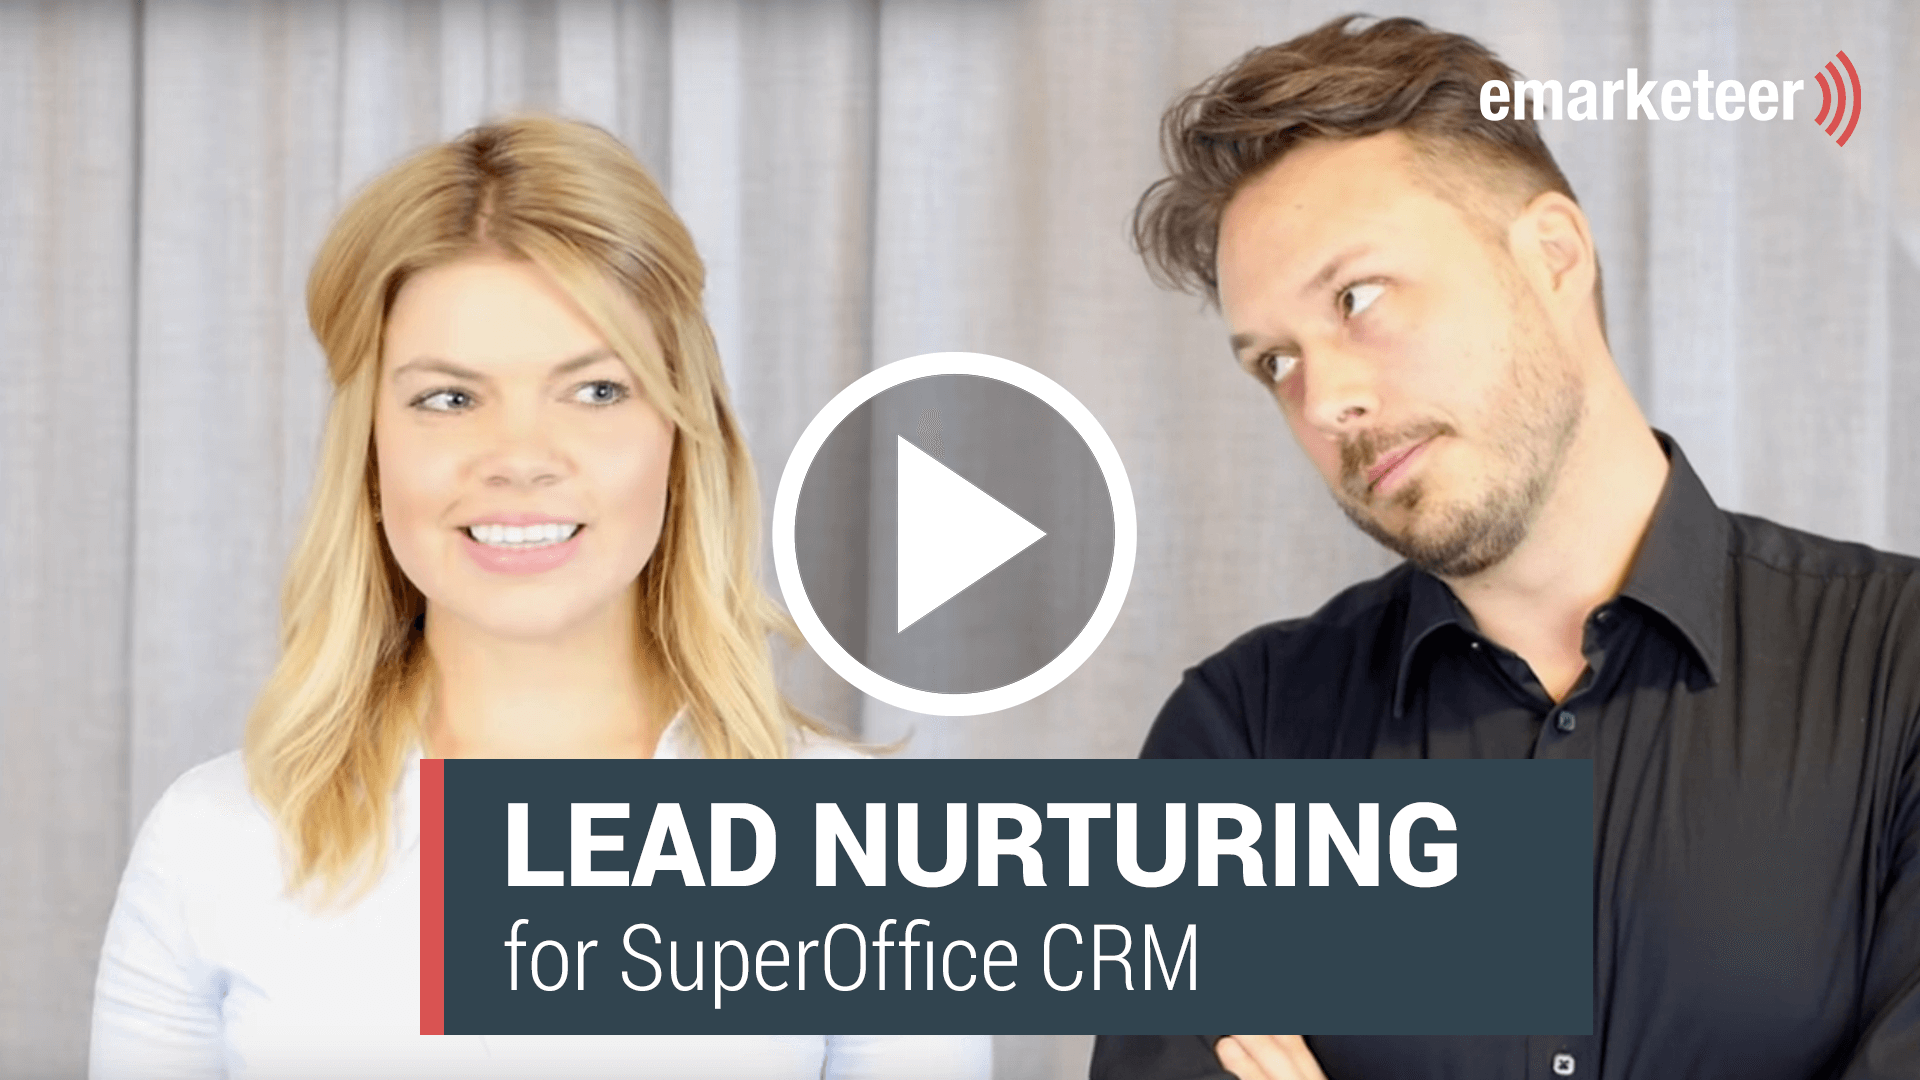 Smarter marketing with eMarketeer and SuperOffice